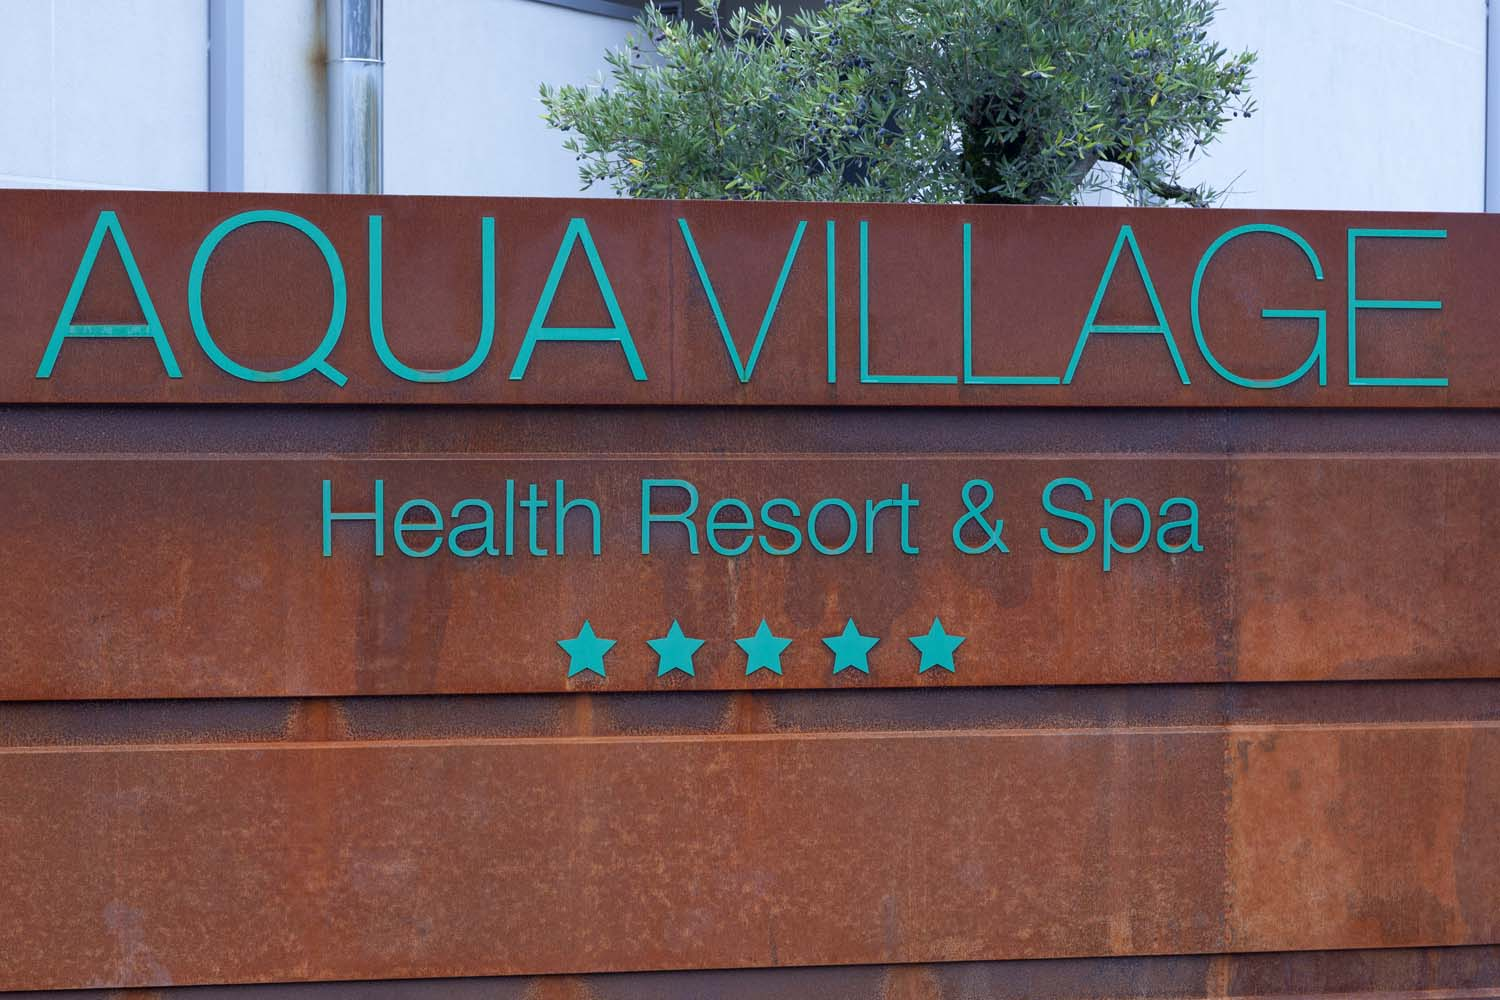 Aqua Village Health Resort & Spa